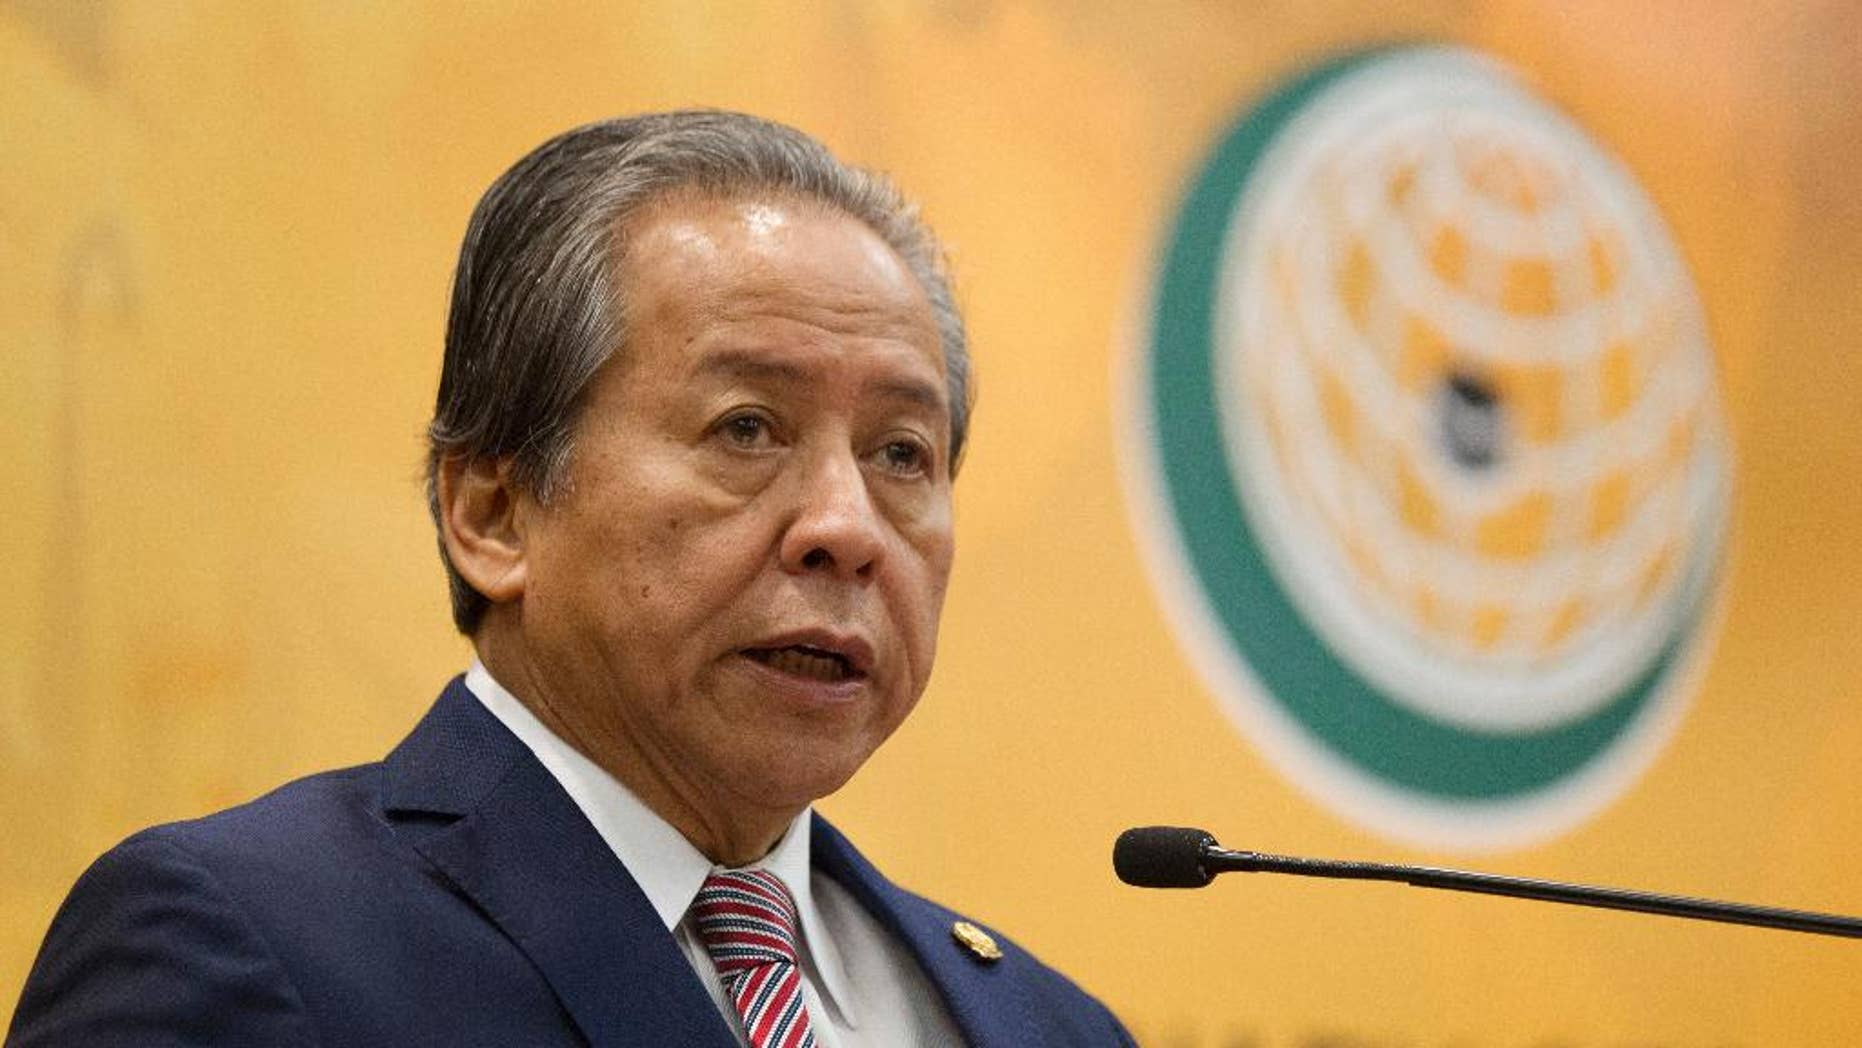 Malaysian Foreign Minister Anifah Aman speaks during a press conference a day before the Extraordinary Session of the OIC Council of Foreign Ministers on the situation of the Rohingya Muslim Minority in Myanmar at a conference center in Kuala Lumpur, Malaysia, Wednesday, Jan. 18, 2017. The meeting will be held in Kuala Lumpur, tomorrow Jan.19, to discuss the plight of the Rohingya Muslim Minority in Myanmar. (AP Photo/Lim Huey Teng)